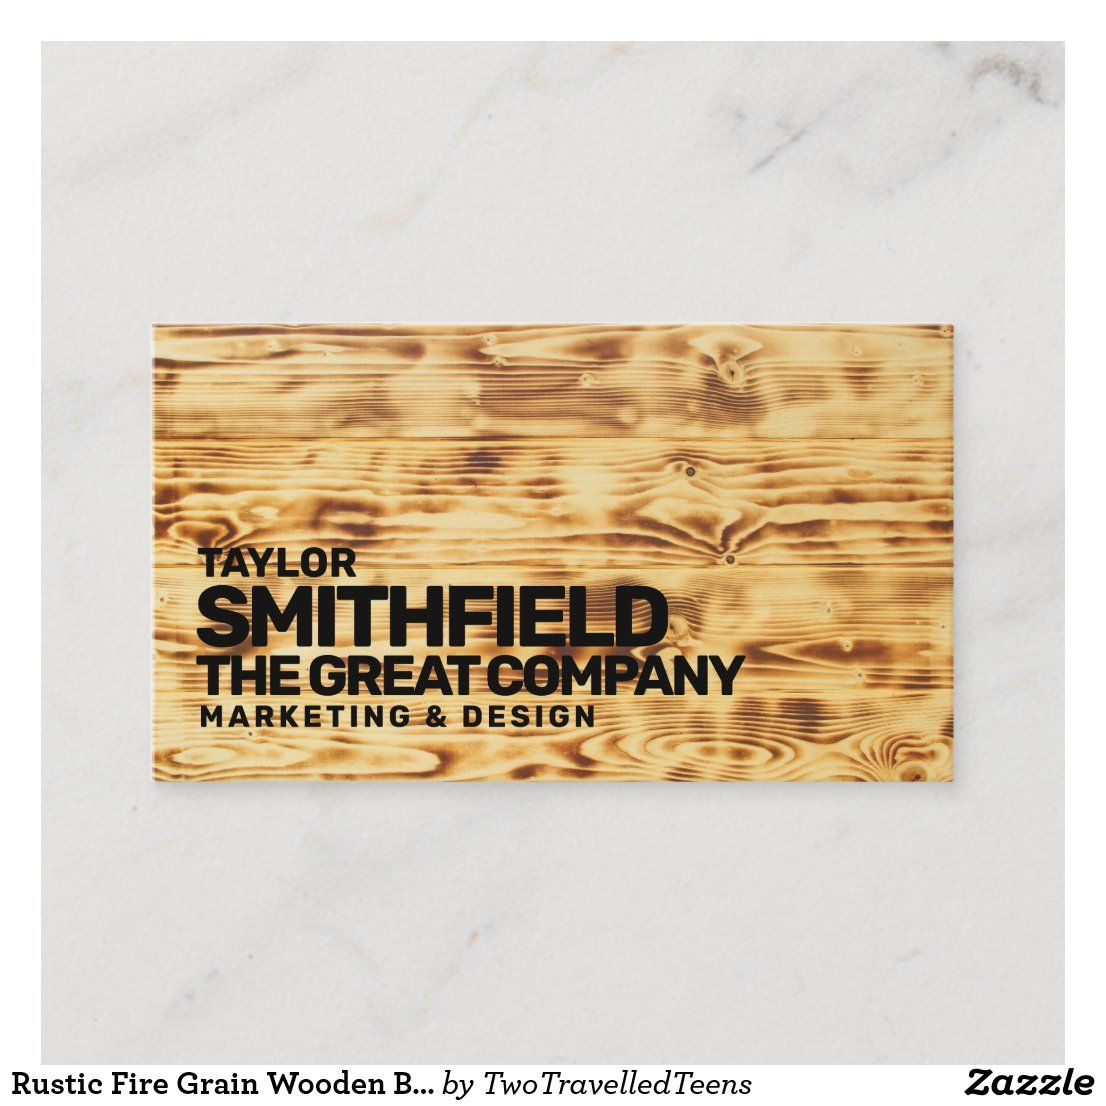 Rustic Fire Grain Wooden Business Card Zazzle Com Wooden Business Card Wooden Company Business Cards